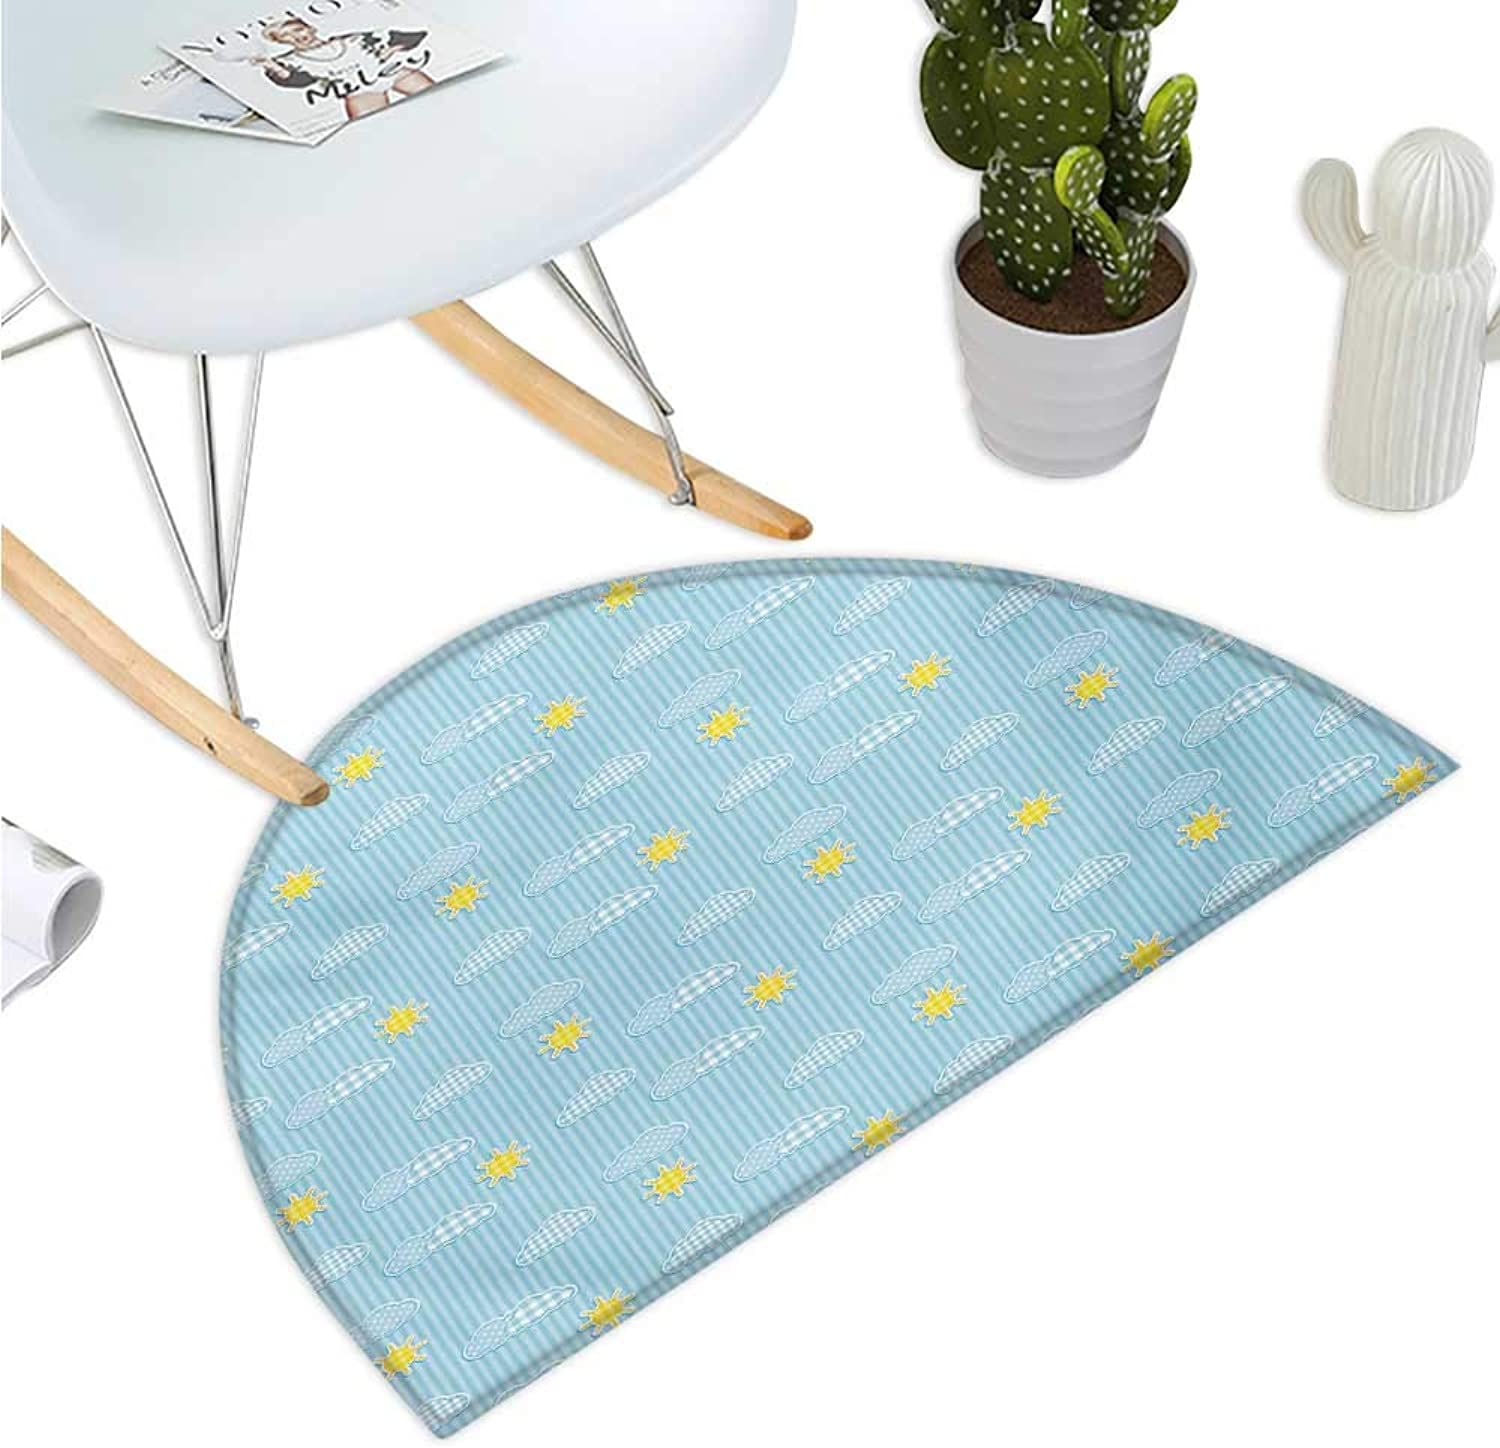 Yellow and bluee Semicircle Doormat Cute Clouds Sun Pattern with greenical Stripes Dots Playroom Design Halfmoon doormats H 43.3  xD 64.9  Pale bluee Yellow